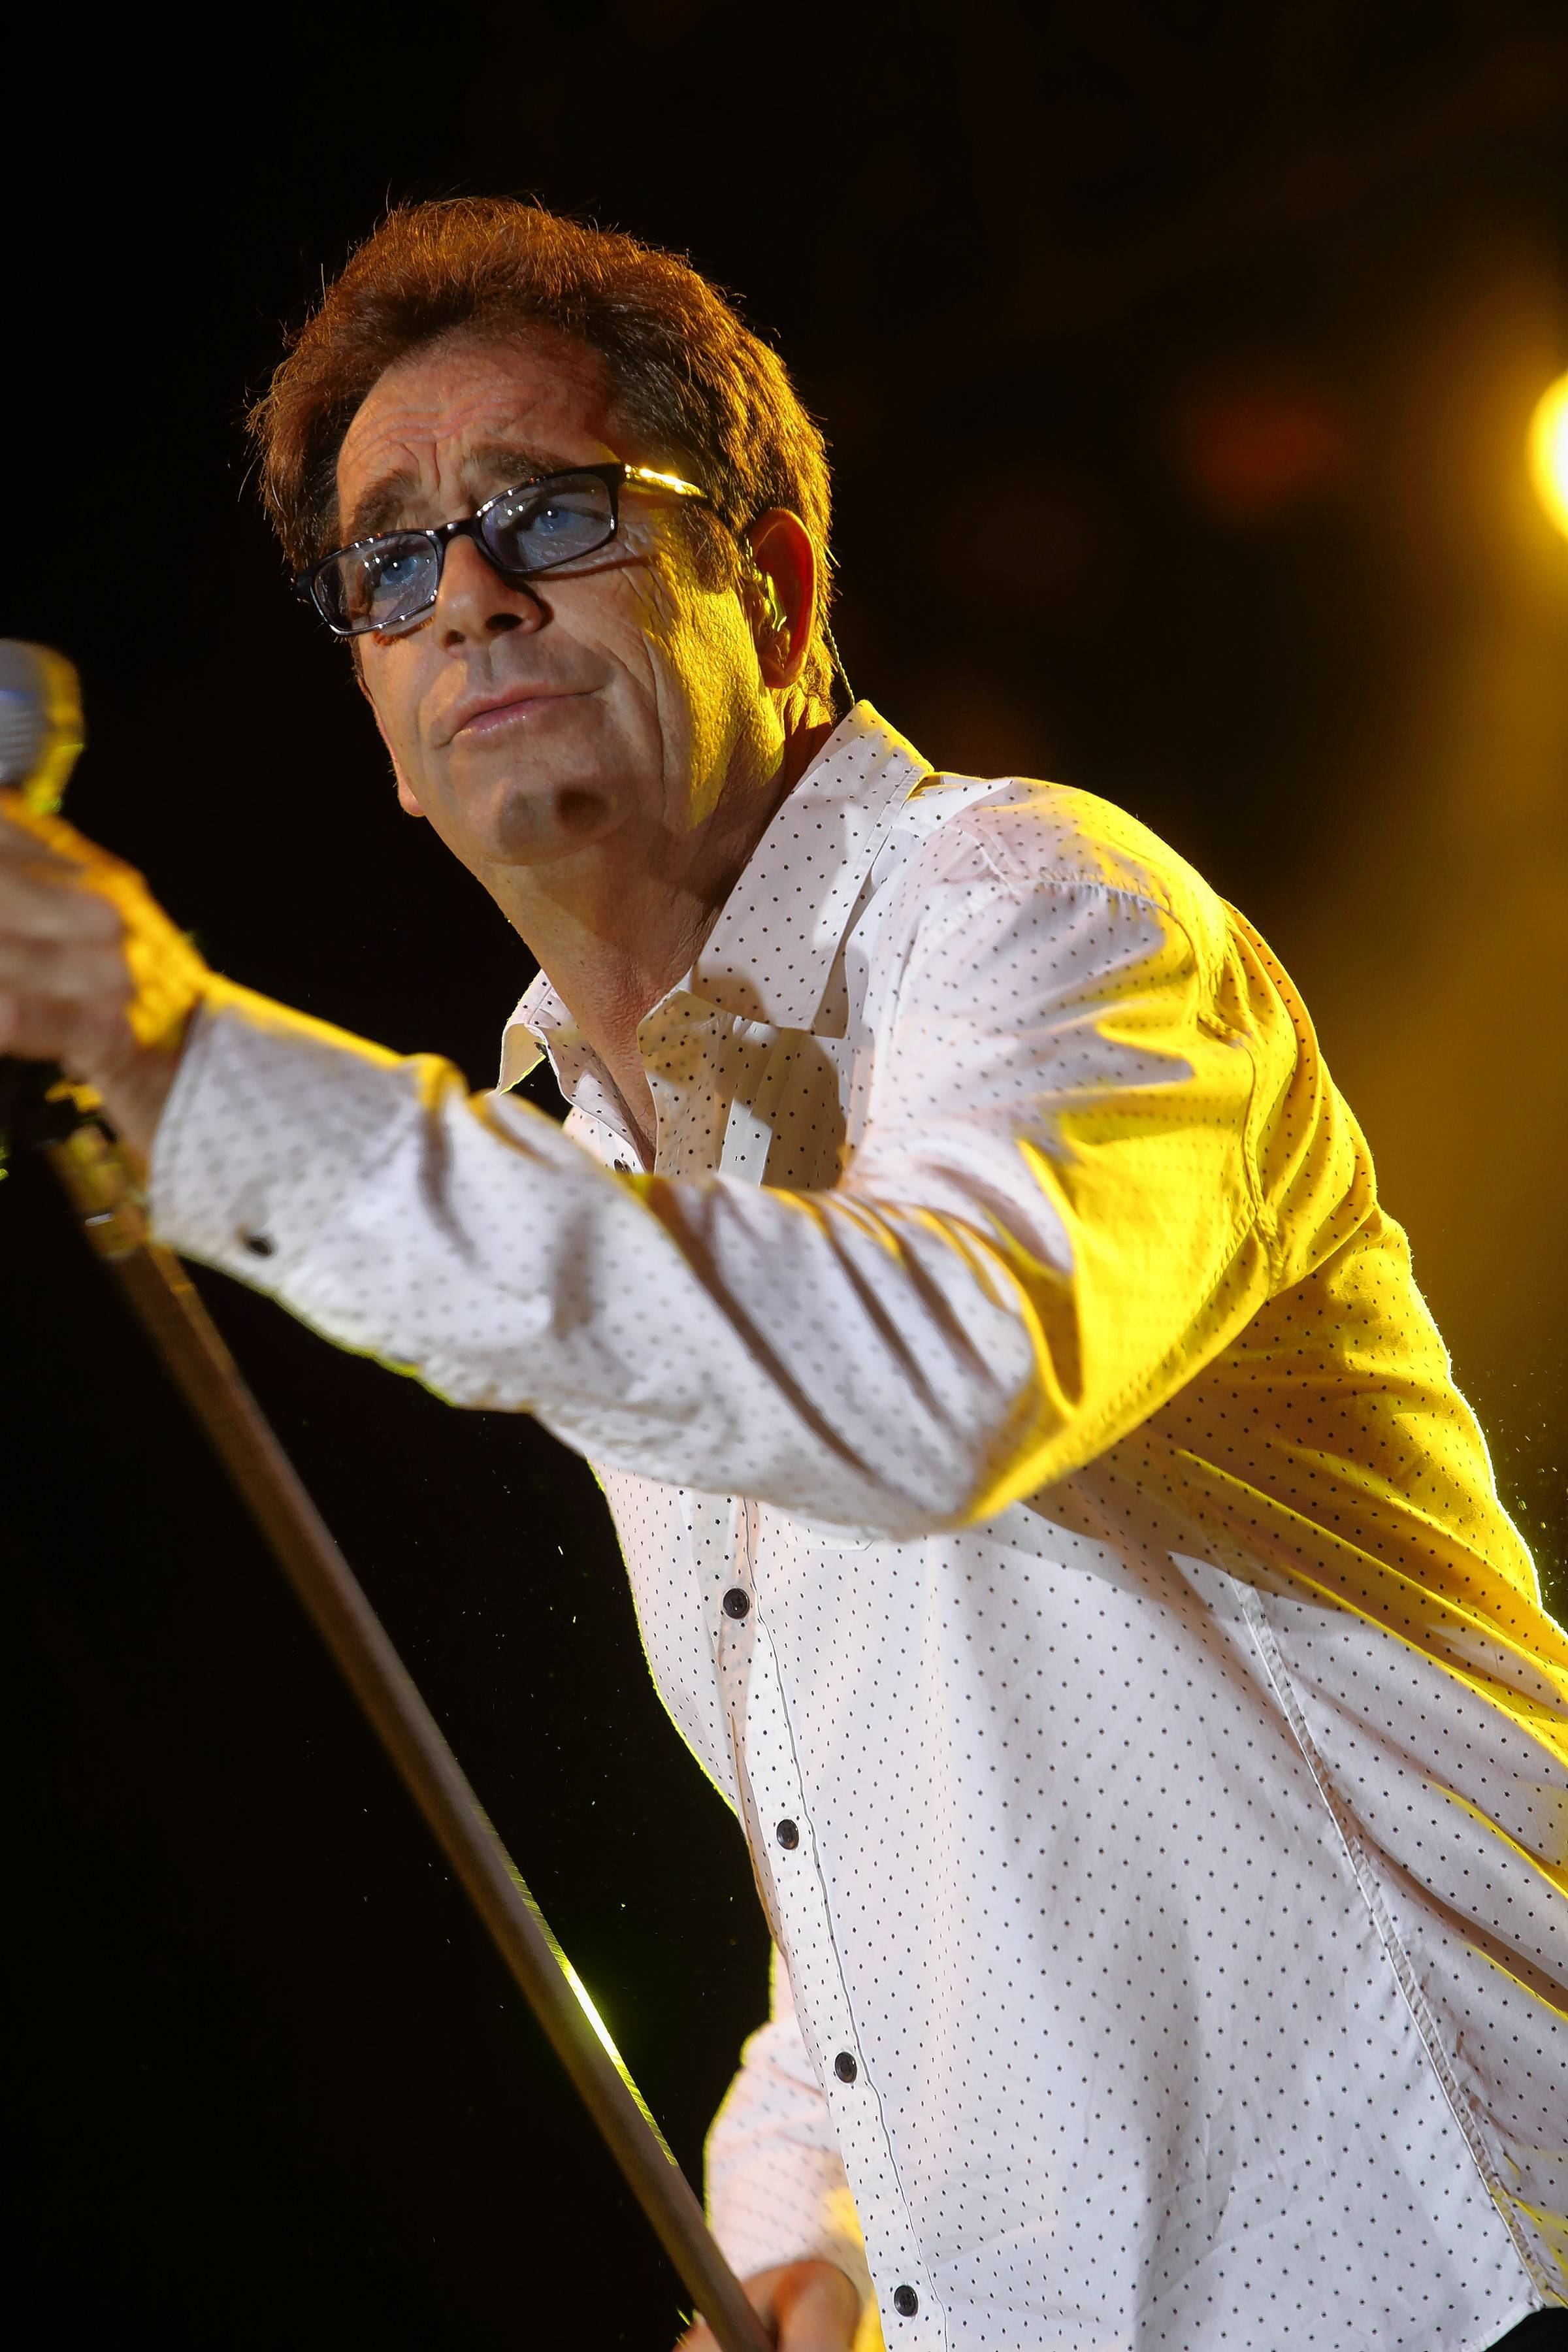 Huey Lewis of Huey Lewis and the News, which plays the Genesee Theatre in Waukegan on Thursday, Sept. 7.